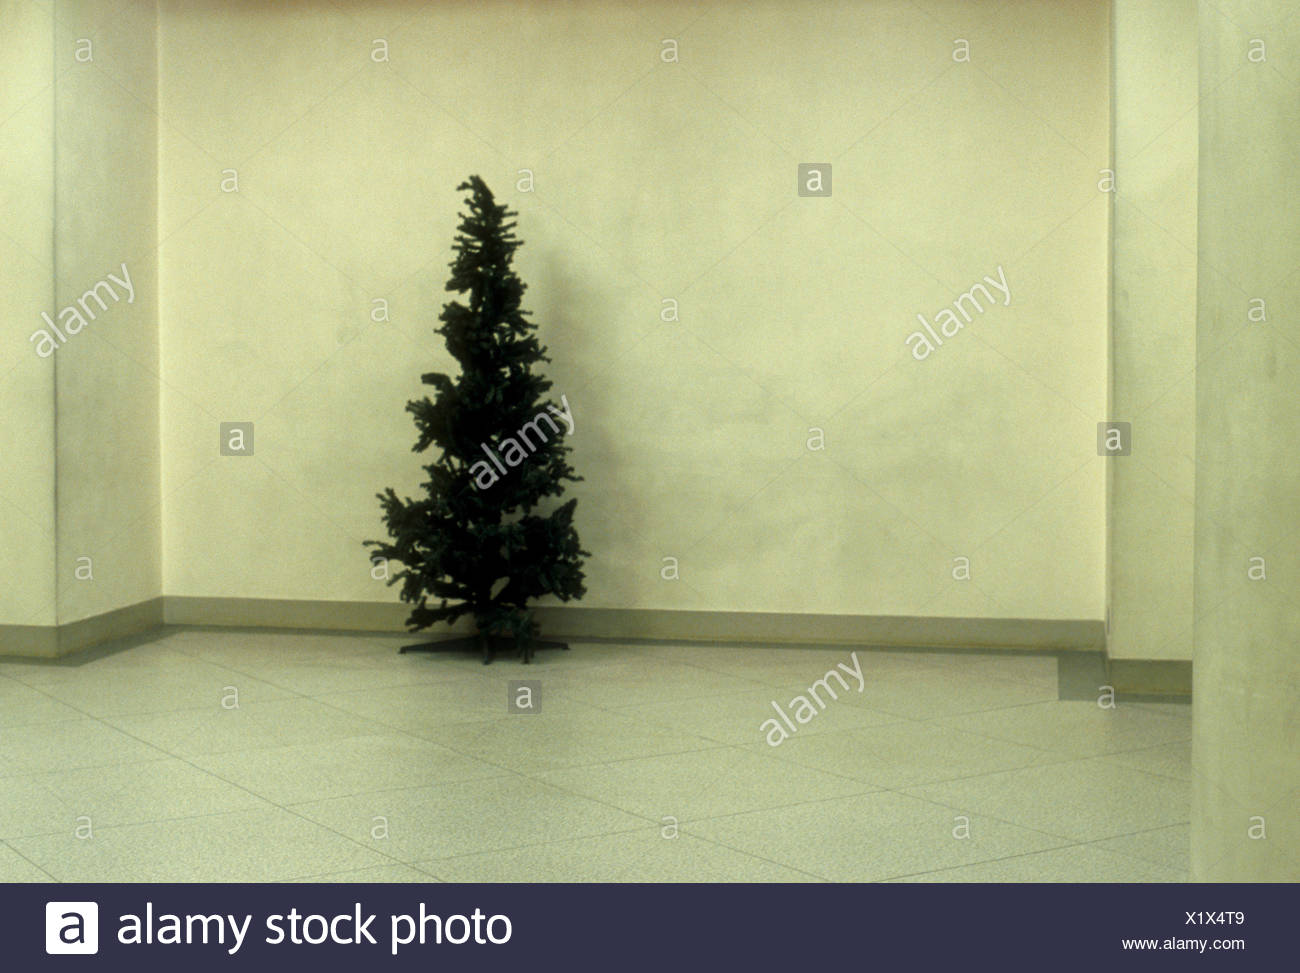 Christmas Tree Stock Photo: 276555113 - Alamy